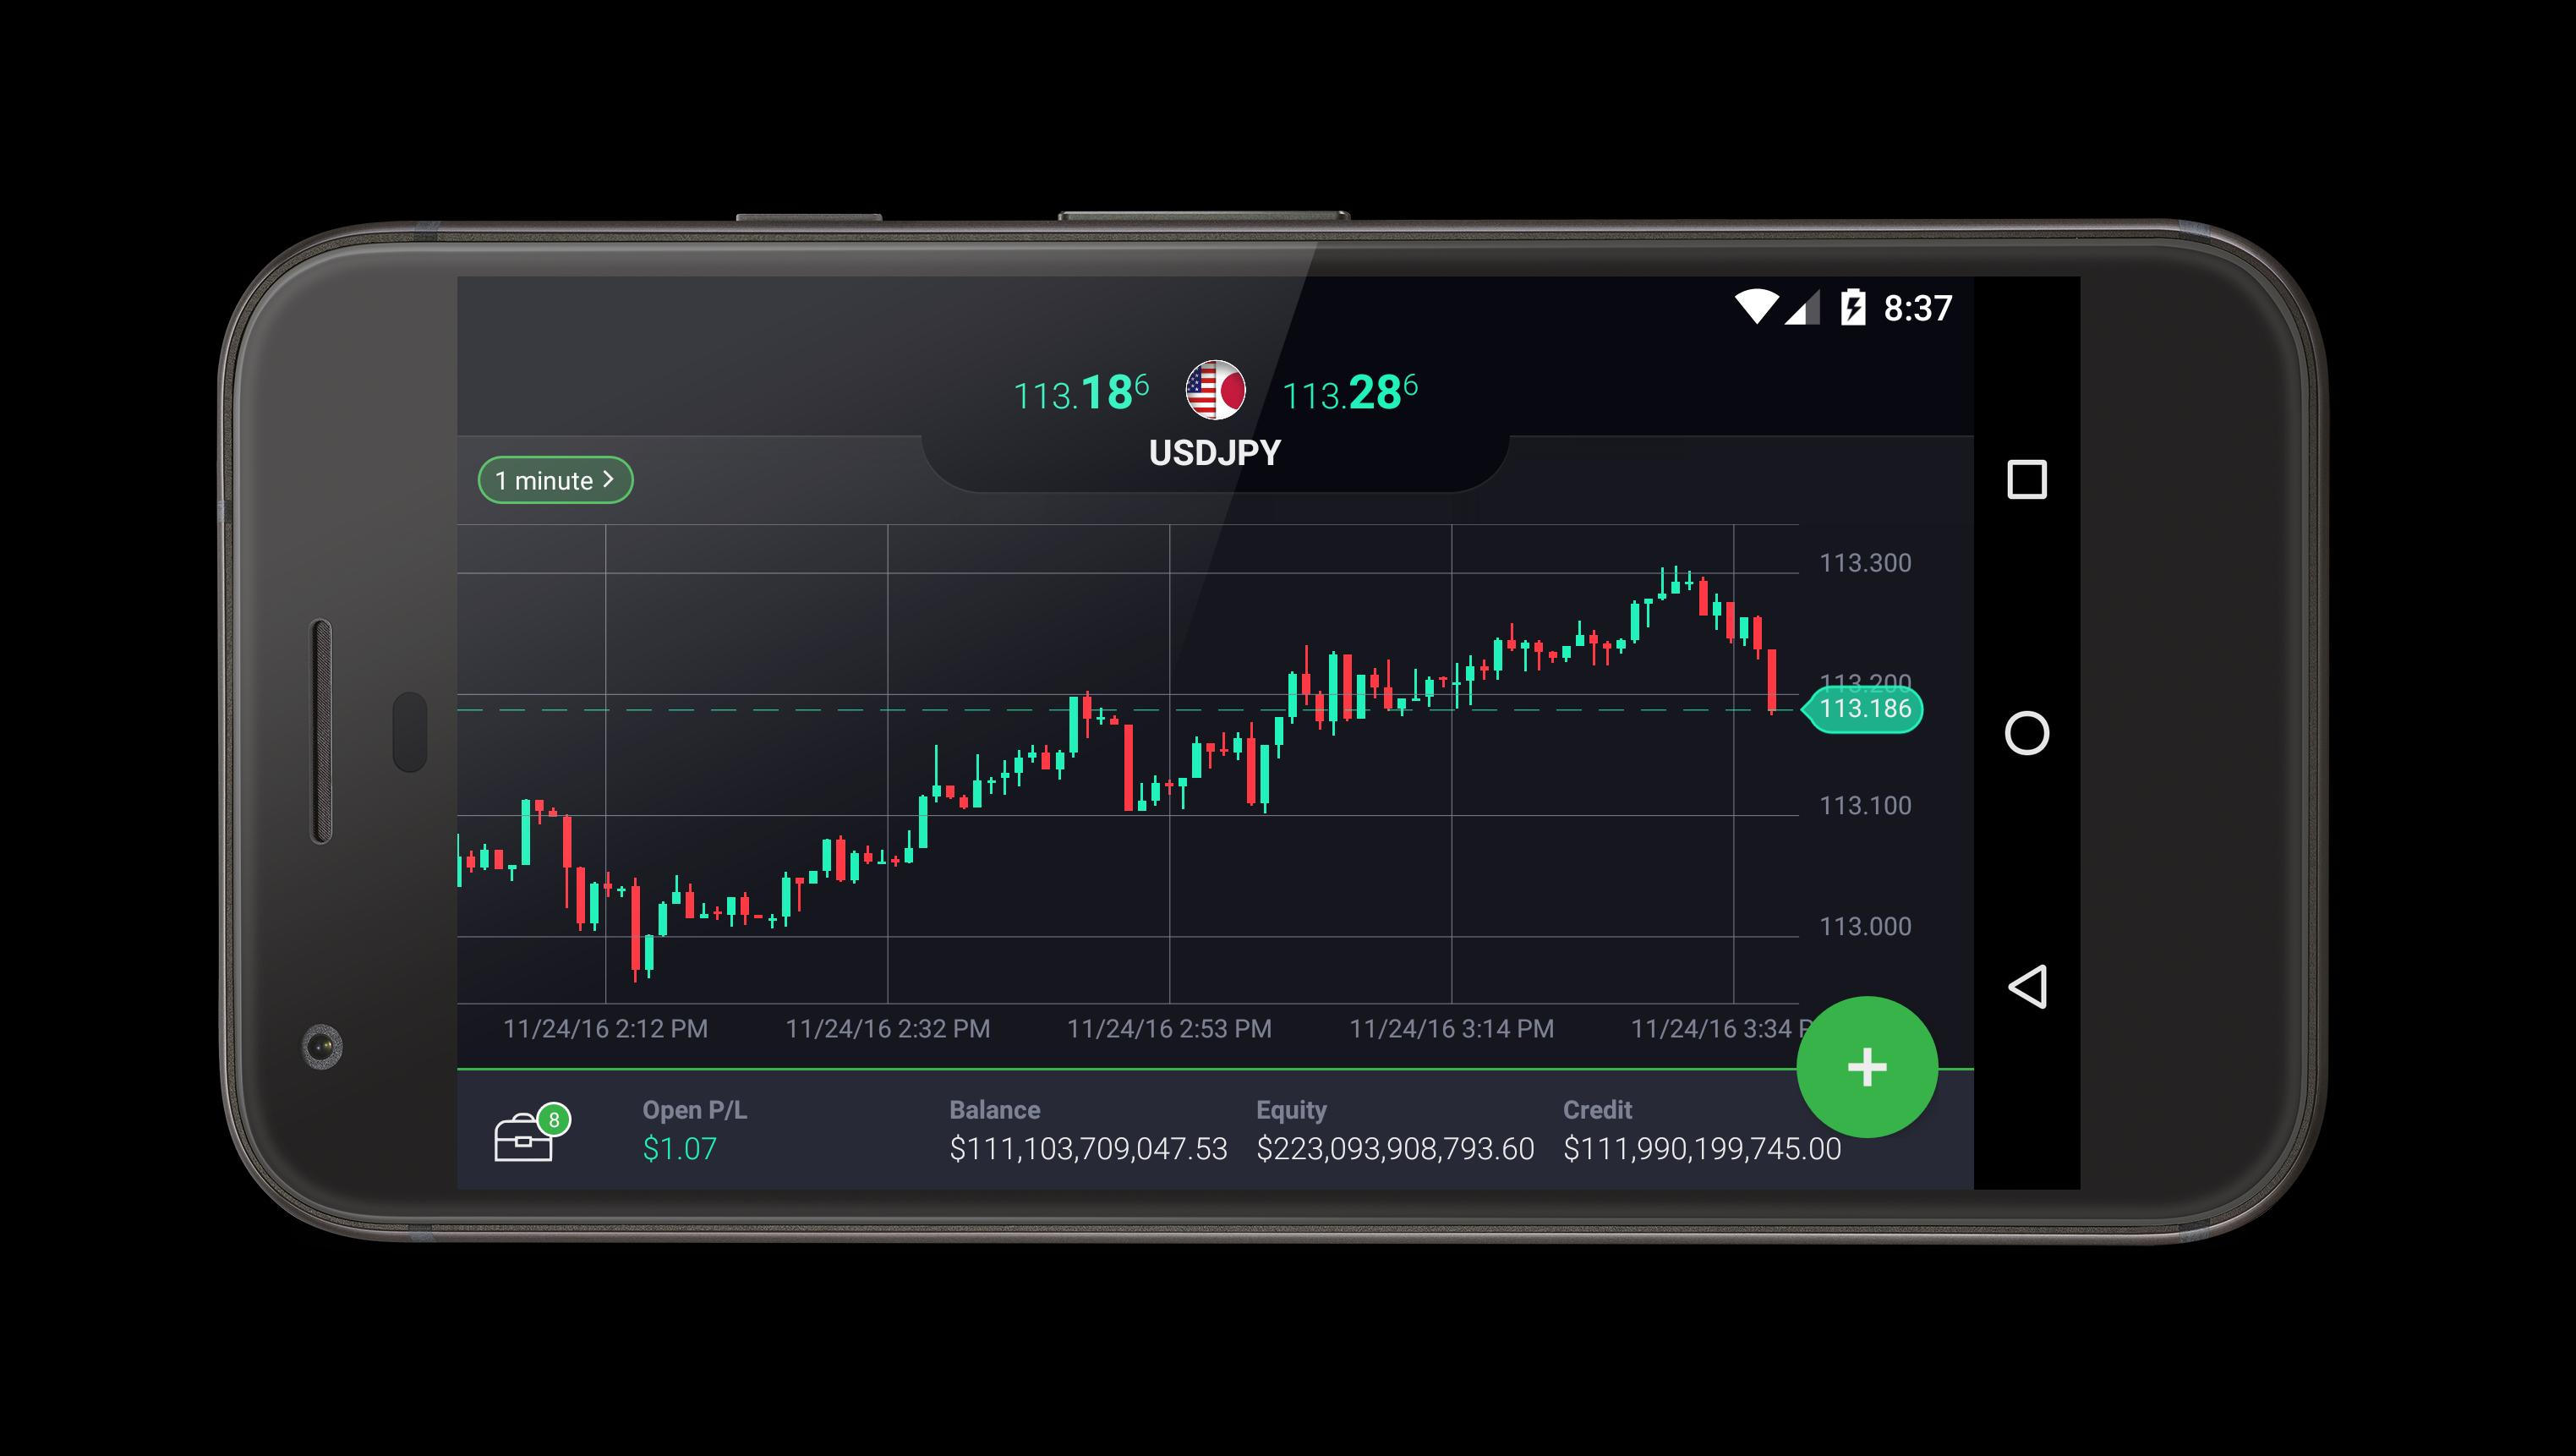 Citi Trader SIRIX Mobile for Android - APK Download